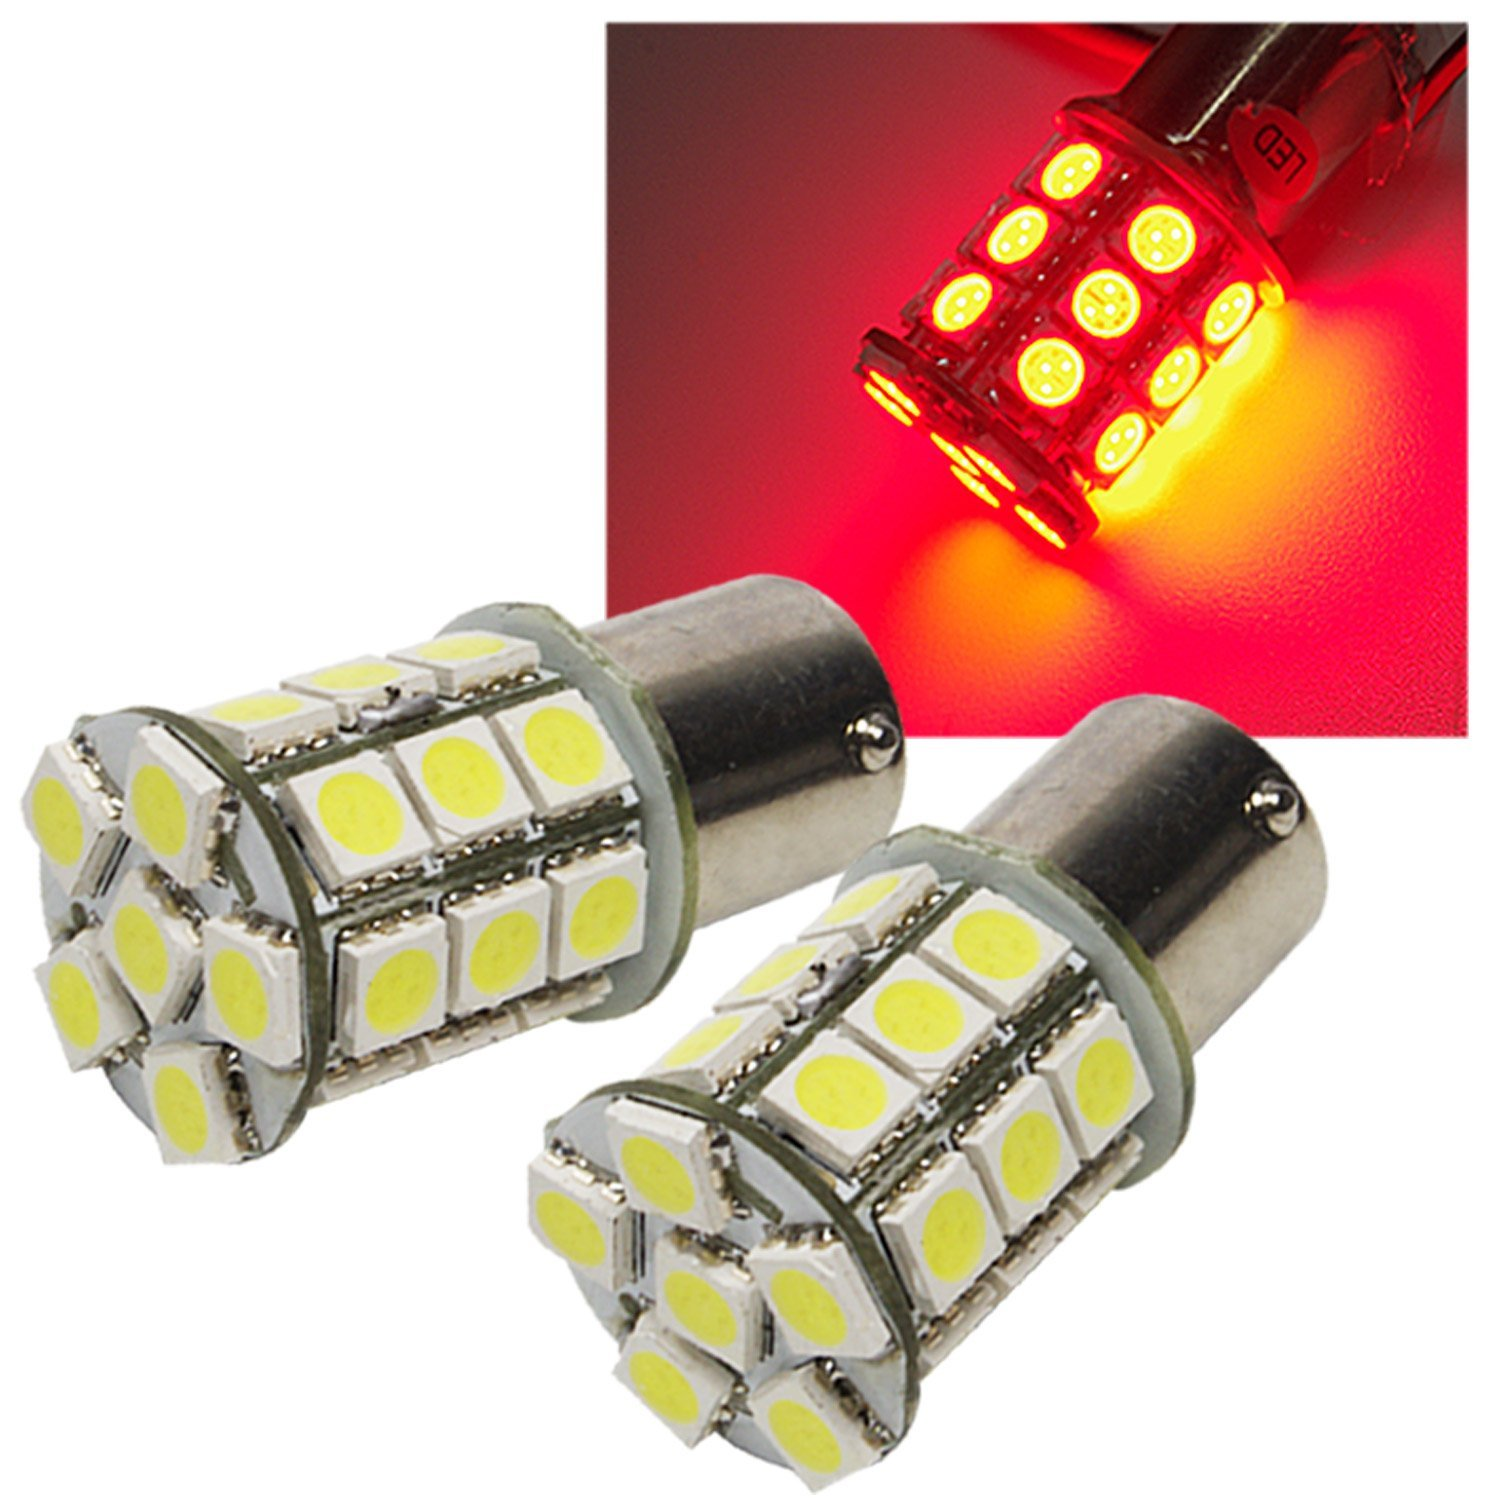 MAXWIN LED valve ball S25 27 consecutive diffusion type S sphere ultra-light-emitting red high-brightness SMD LB1-S25-27HP3-R-RE01